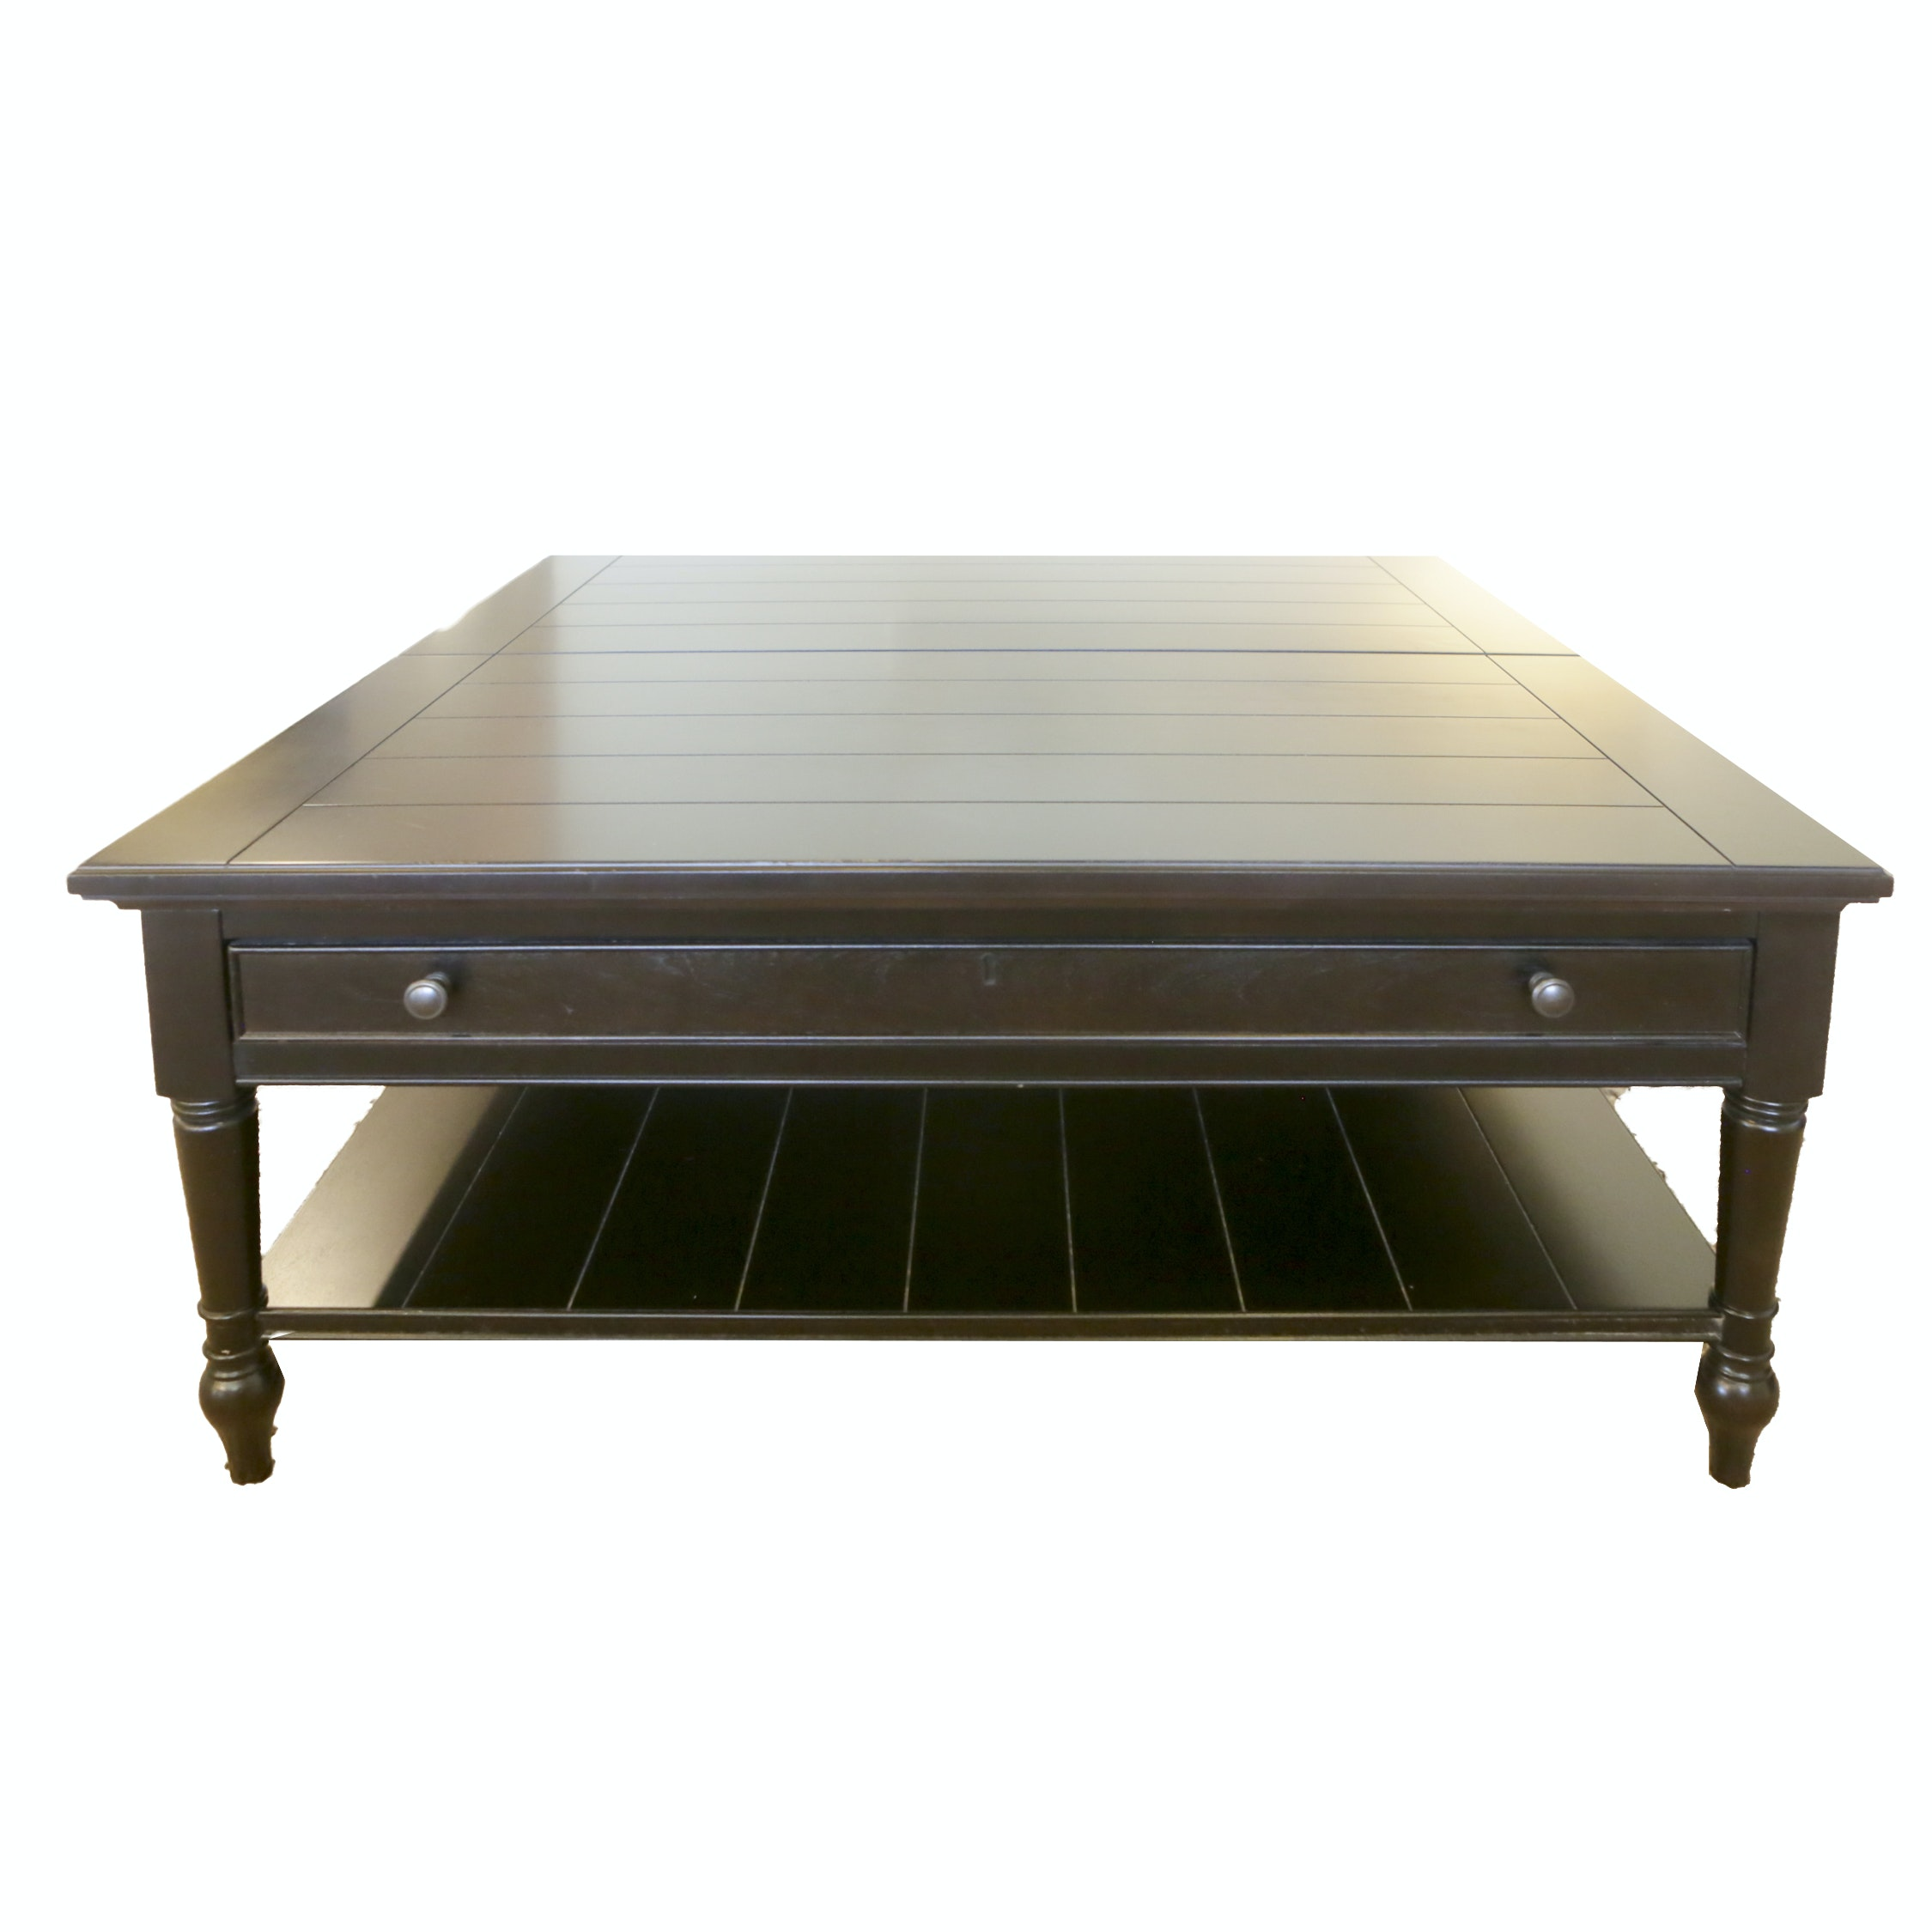 Contemporary Coffee Table by Universal